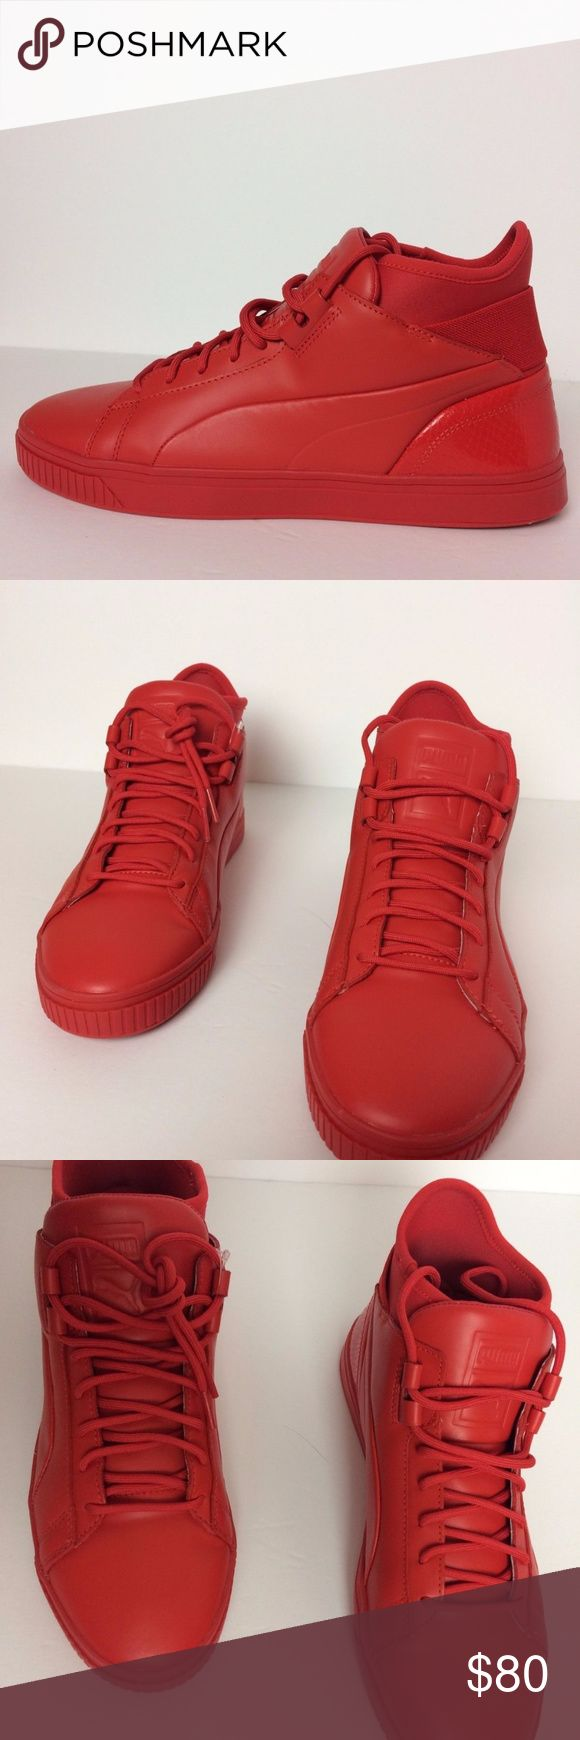 PUMA PLAY PREMIUM RED MONOTONE MID TOP MENS PUMA PLAY PREMIUM HIGH RISK RED MONOTONE MID TOP MENS SIZE 8.5 US 361709-03  No box , guaranteed 100% authentic. Puma Shoes Sneakers